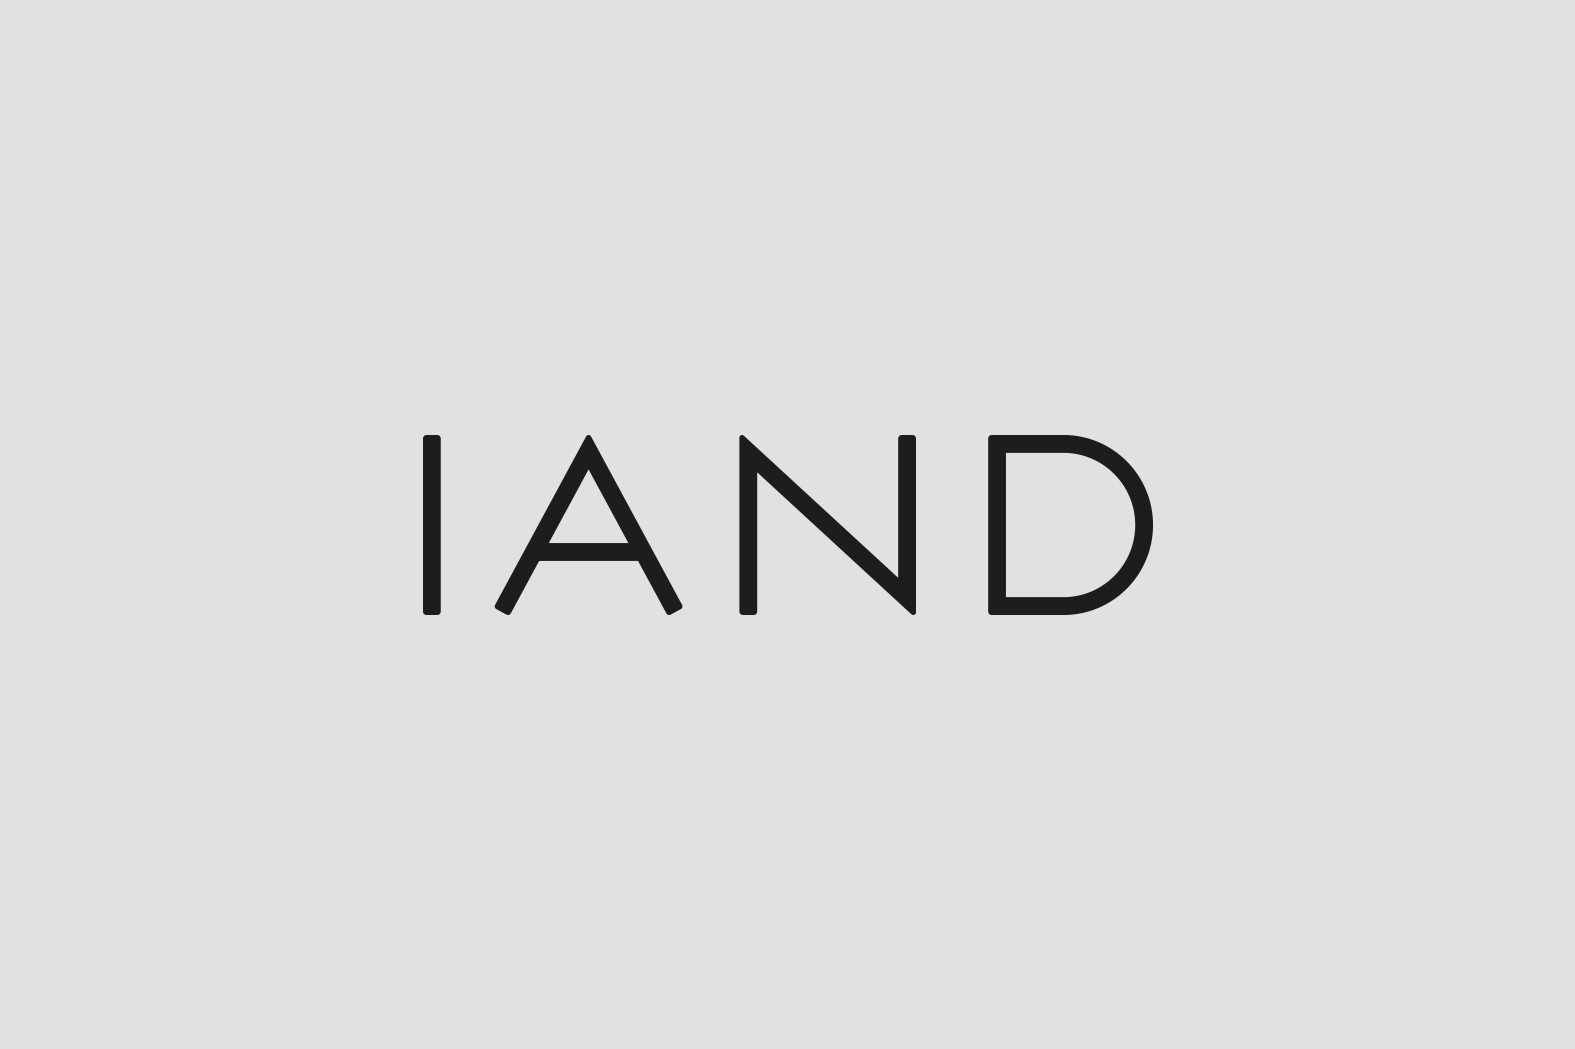 CollatedLogo_IAND_Grey.jpg